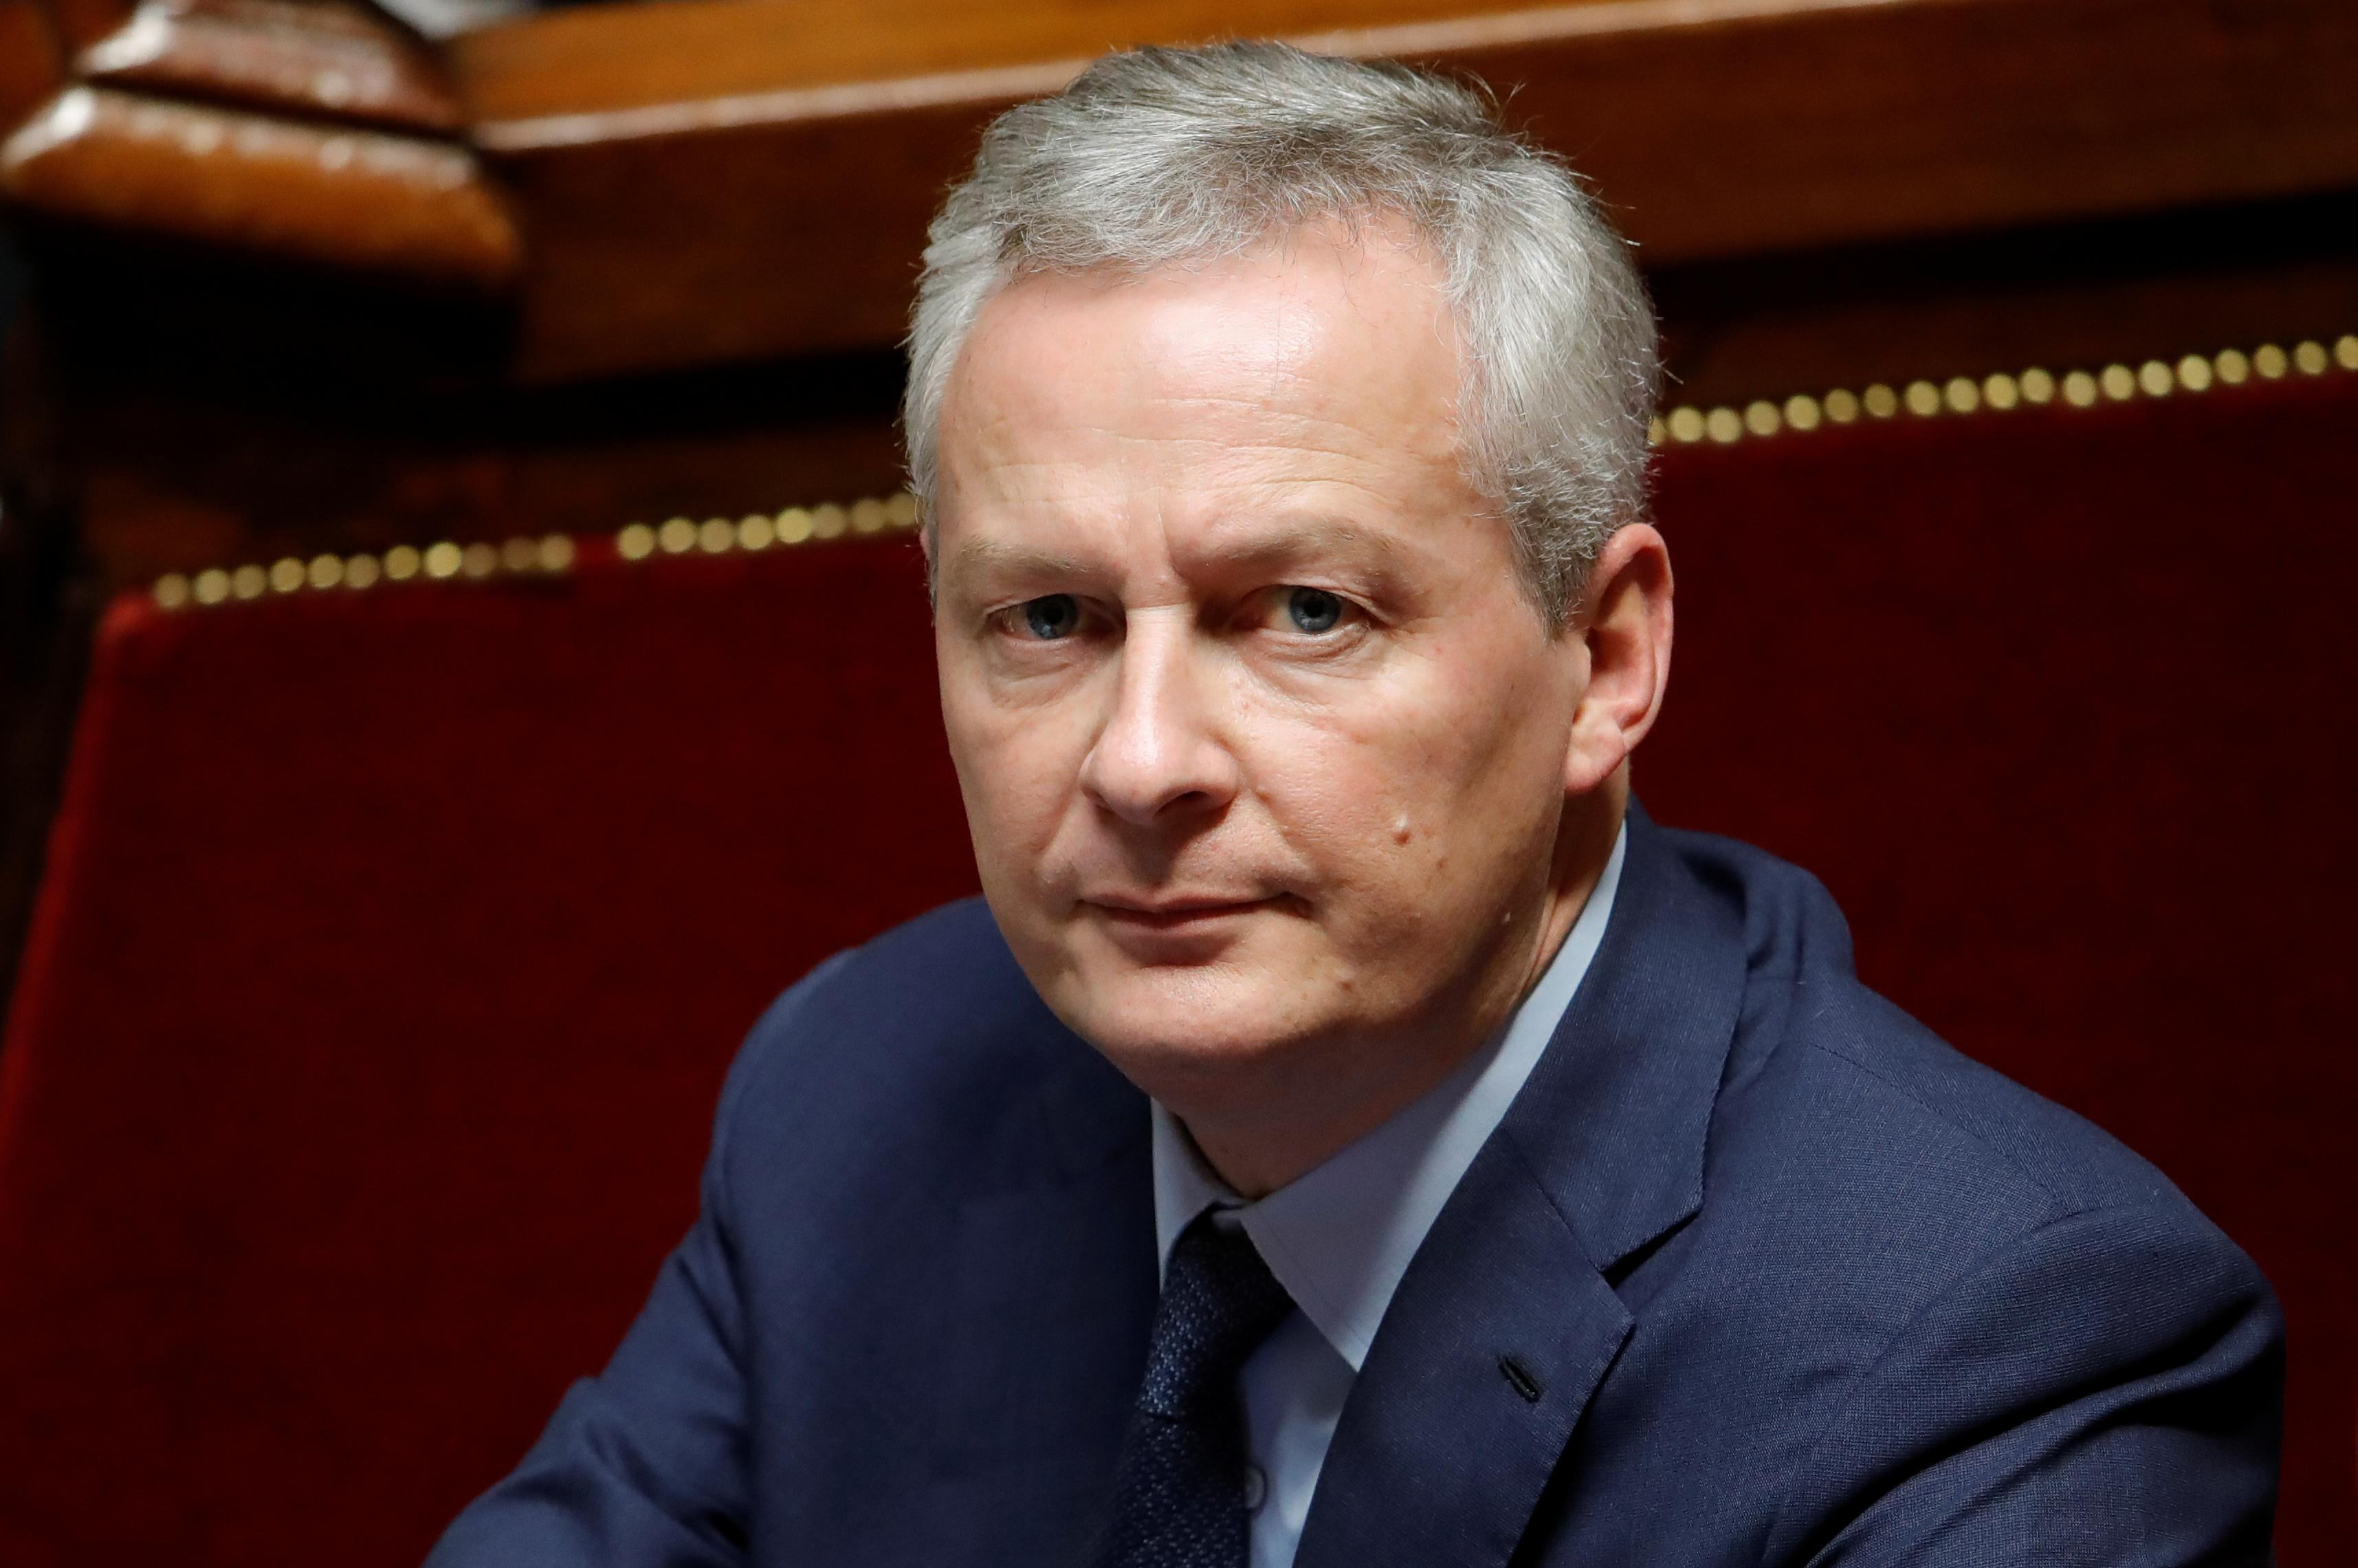 Yellow vest protest to have severe impact on economy: Le Maire